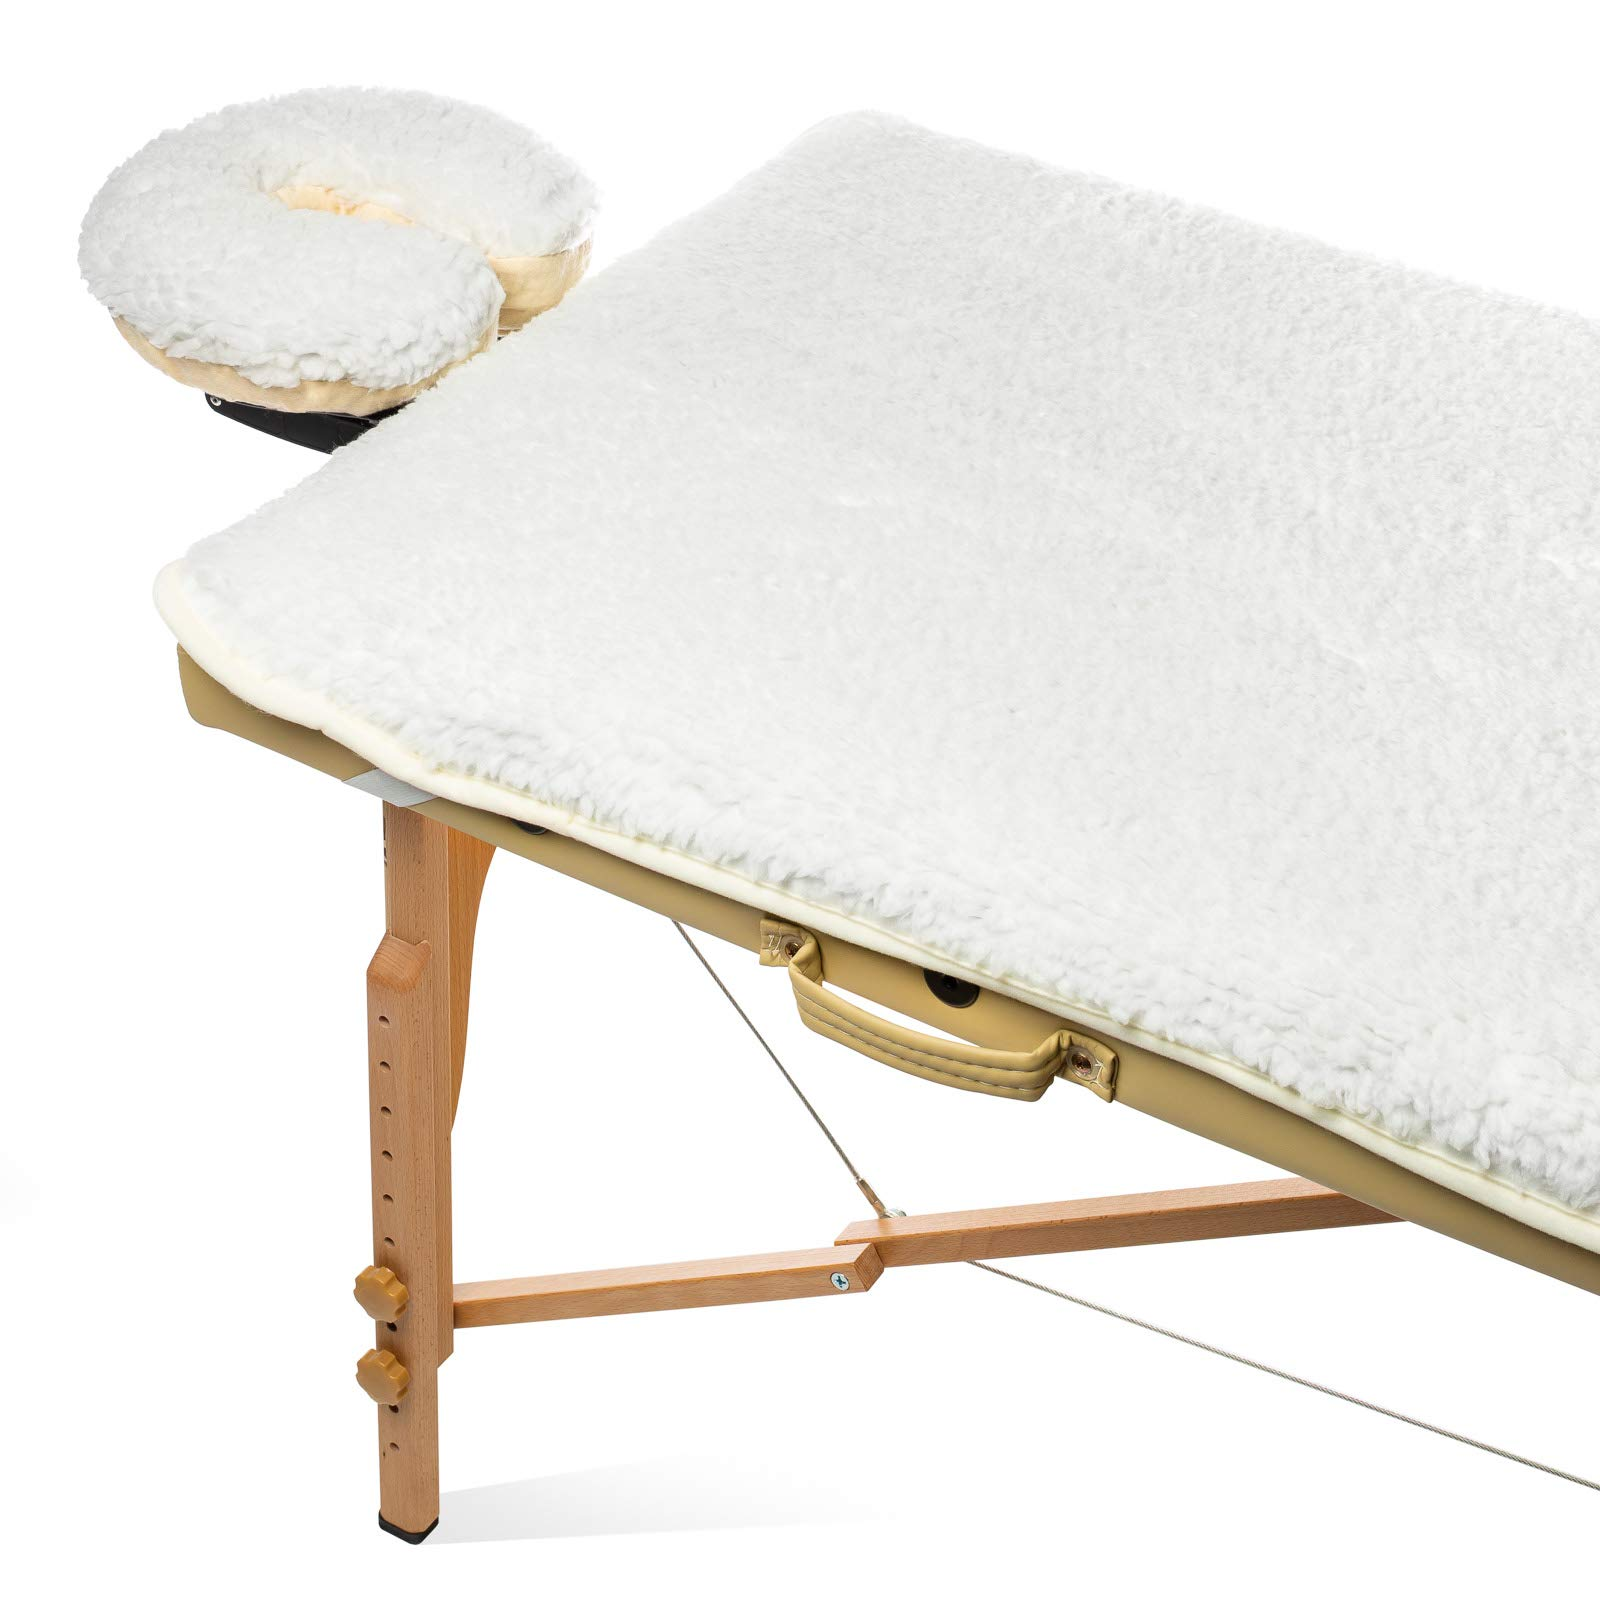 Saloniture Fleece Massage Table Pad & Face Cradle Set - Soft and Comfortable 1/2'' Thick Facial Bed and Headrest Cover - Natural by Saloniture